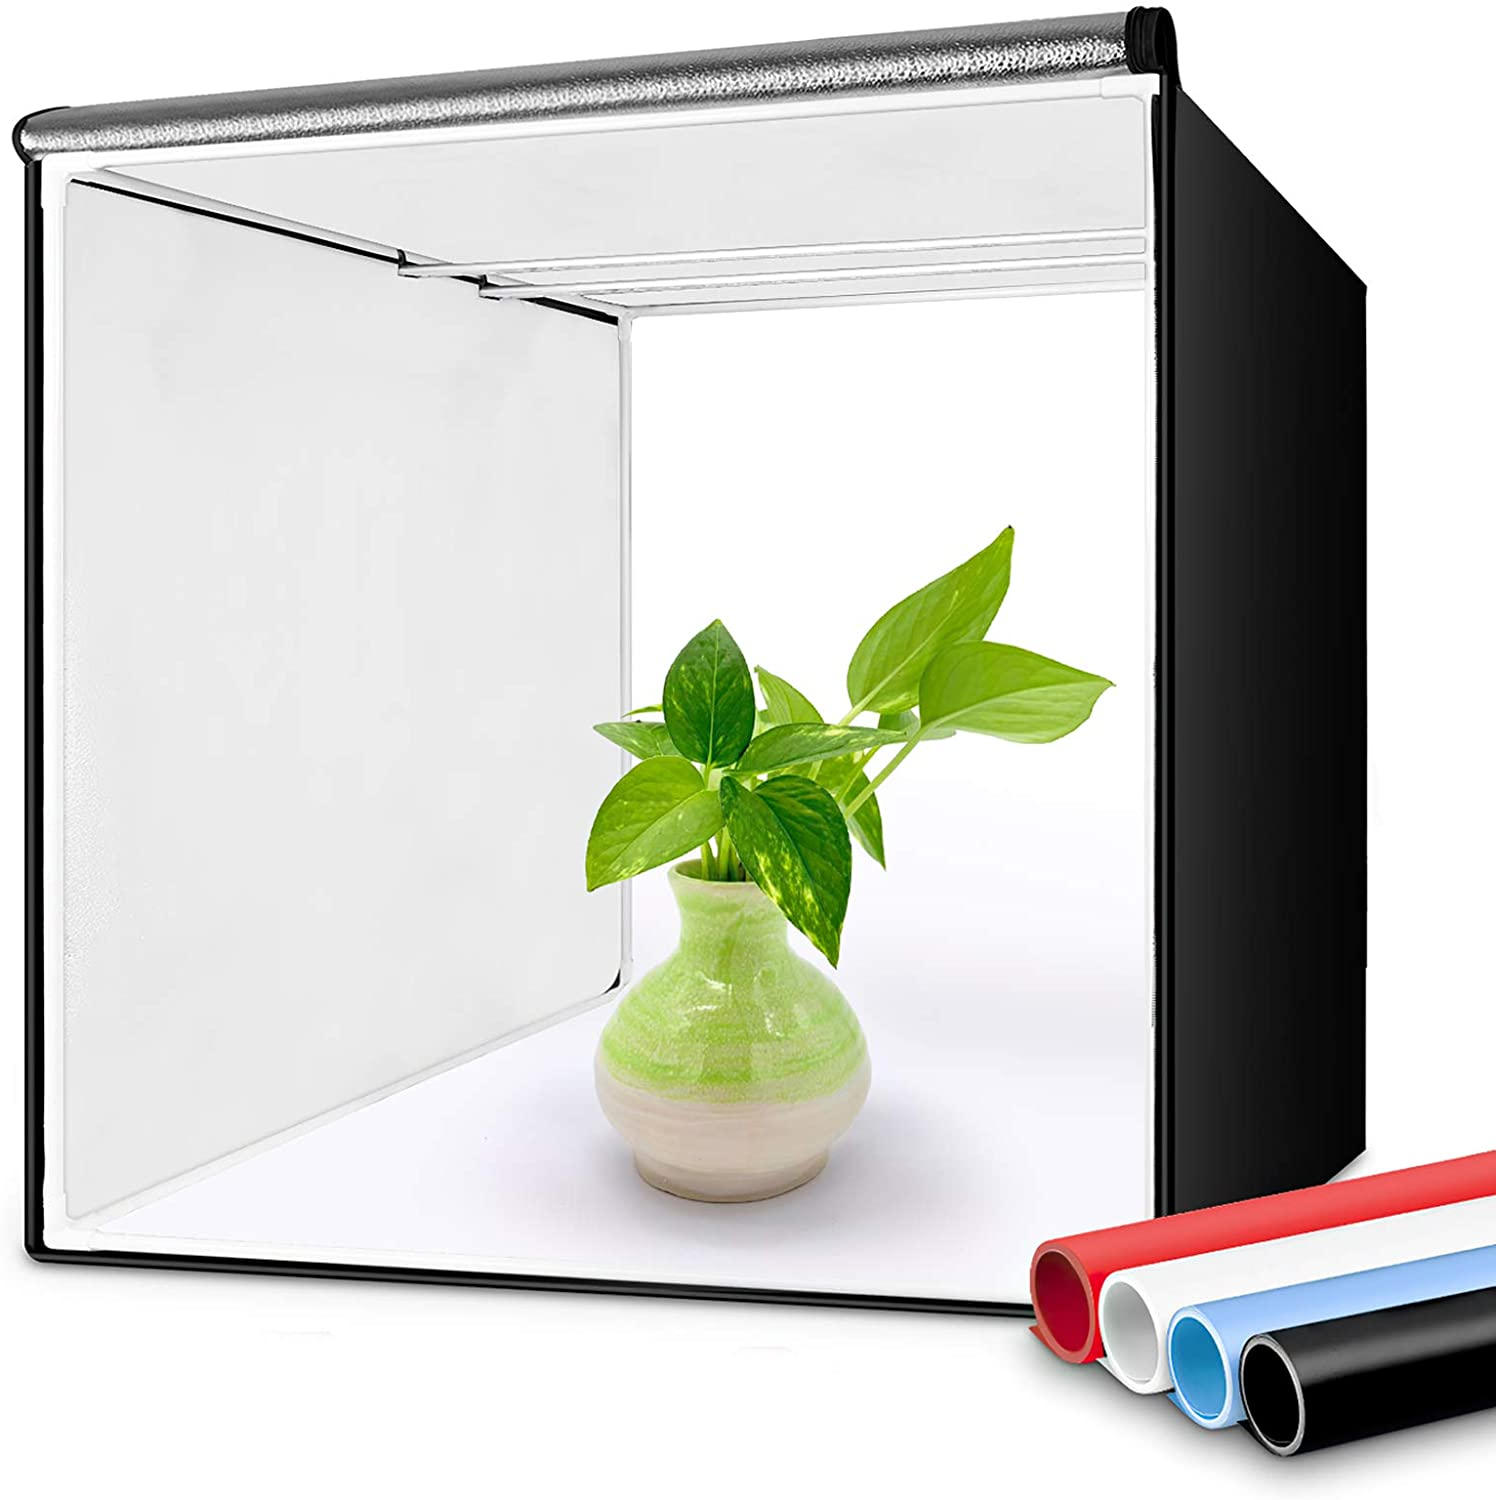 Professional Photo Light Box Food Shoes Photography Heorryn 16x16x16 Inches Portable Photo Studio Box Folding Shooting Tent Kit with Brightness Dimmable 126 LED Lights and 5 Backdrops for Jewellery